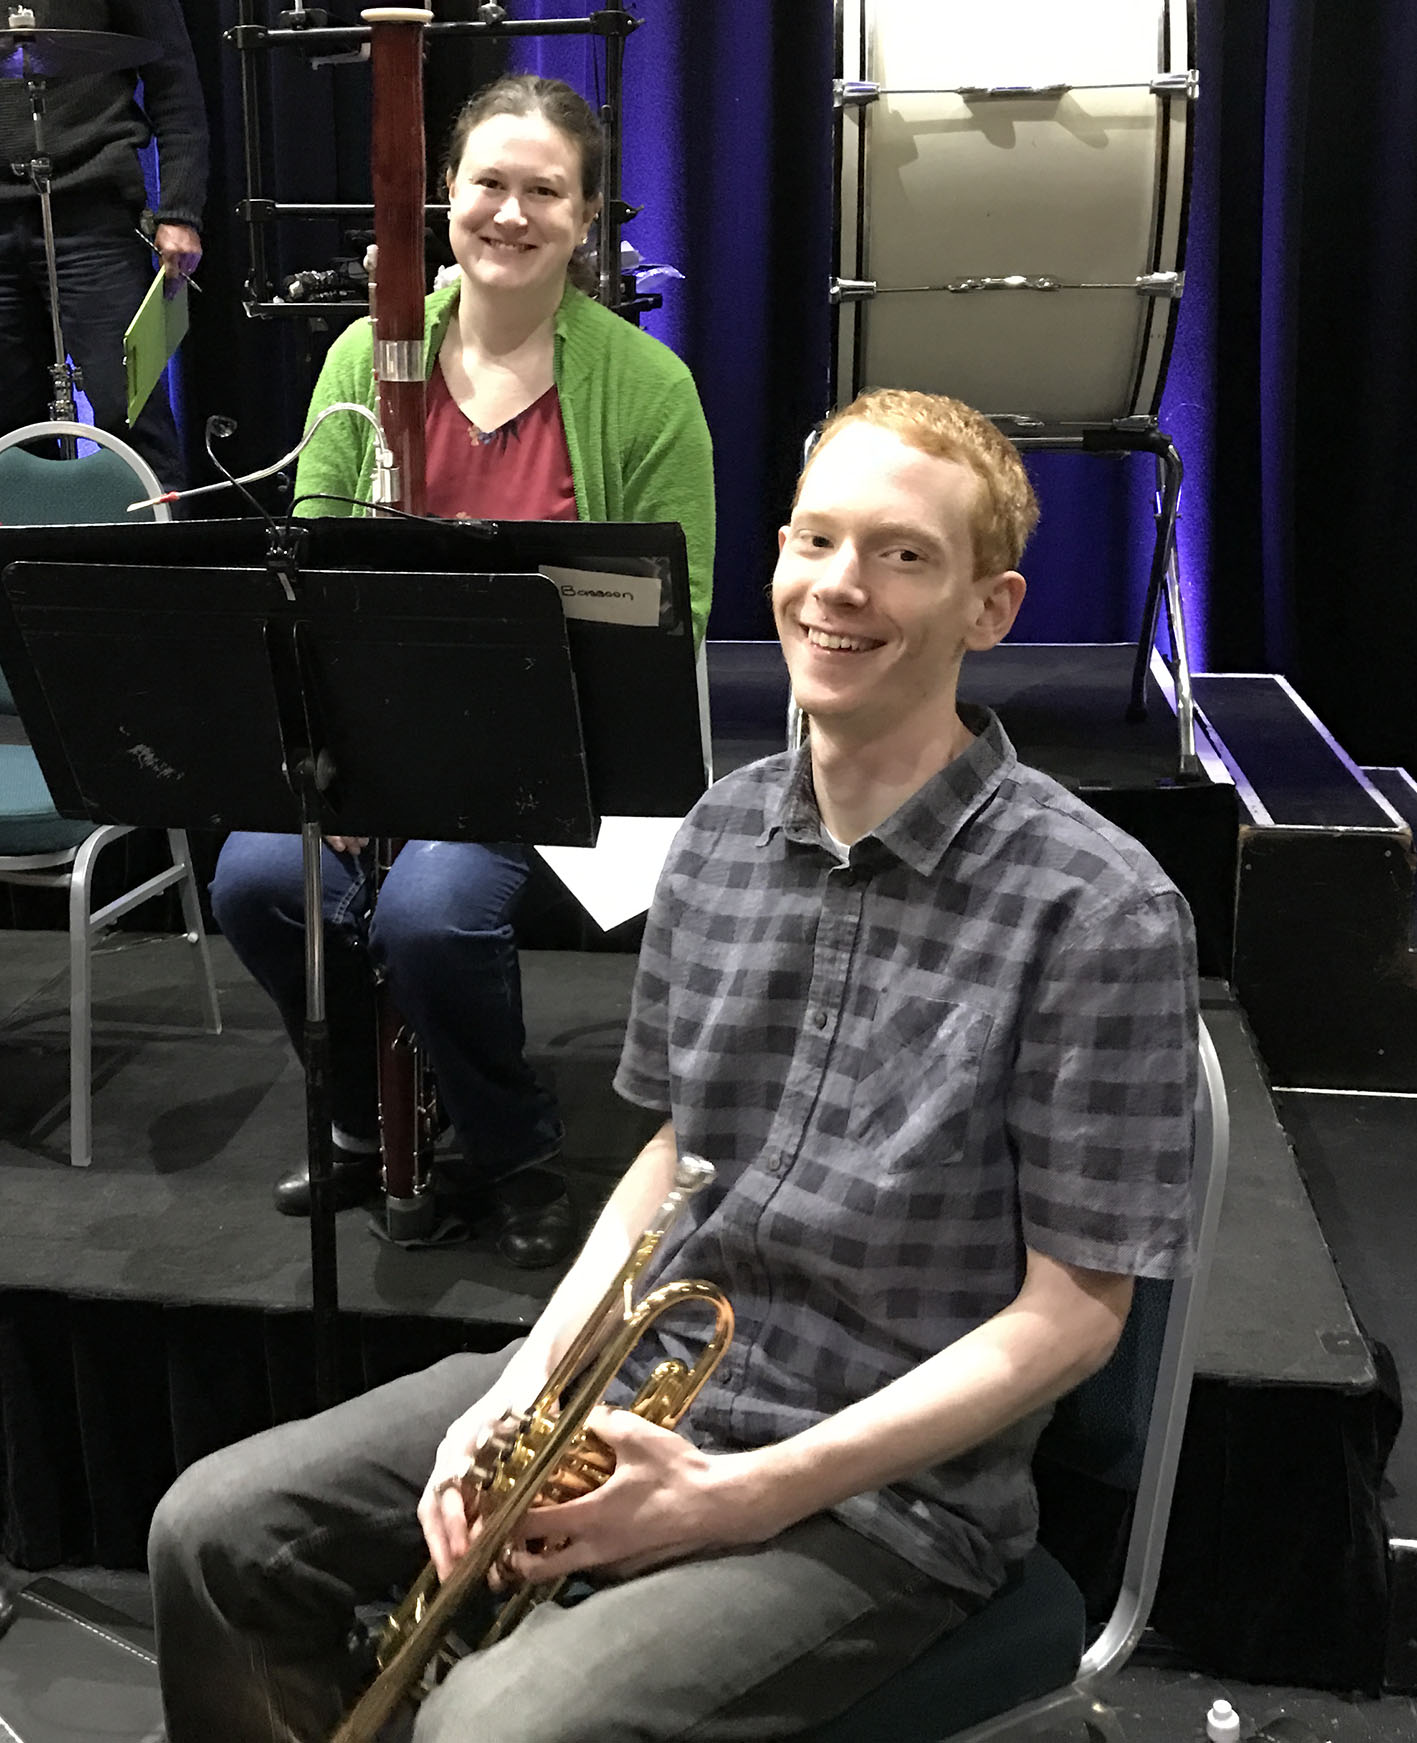 Nyree O'Connor, bassoon, and Caleb Noller, trumpet